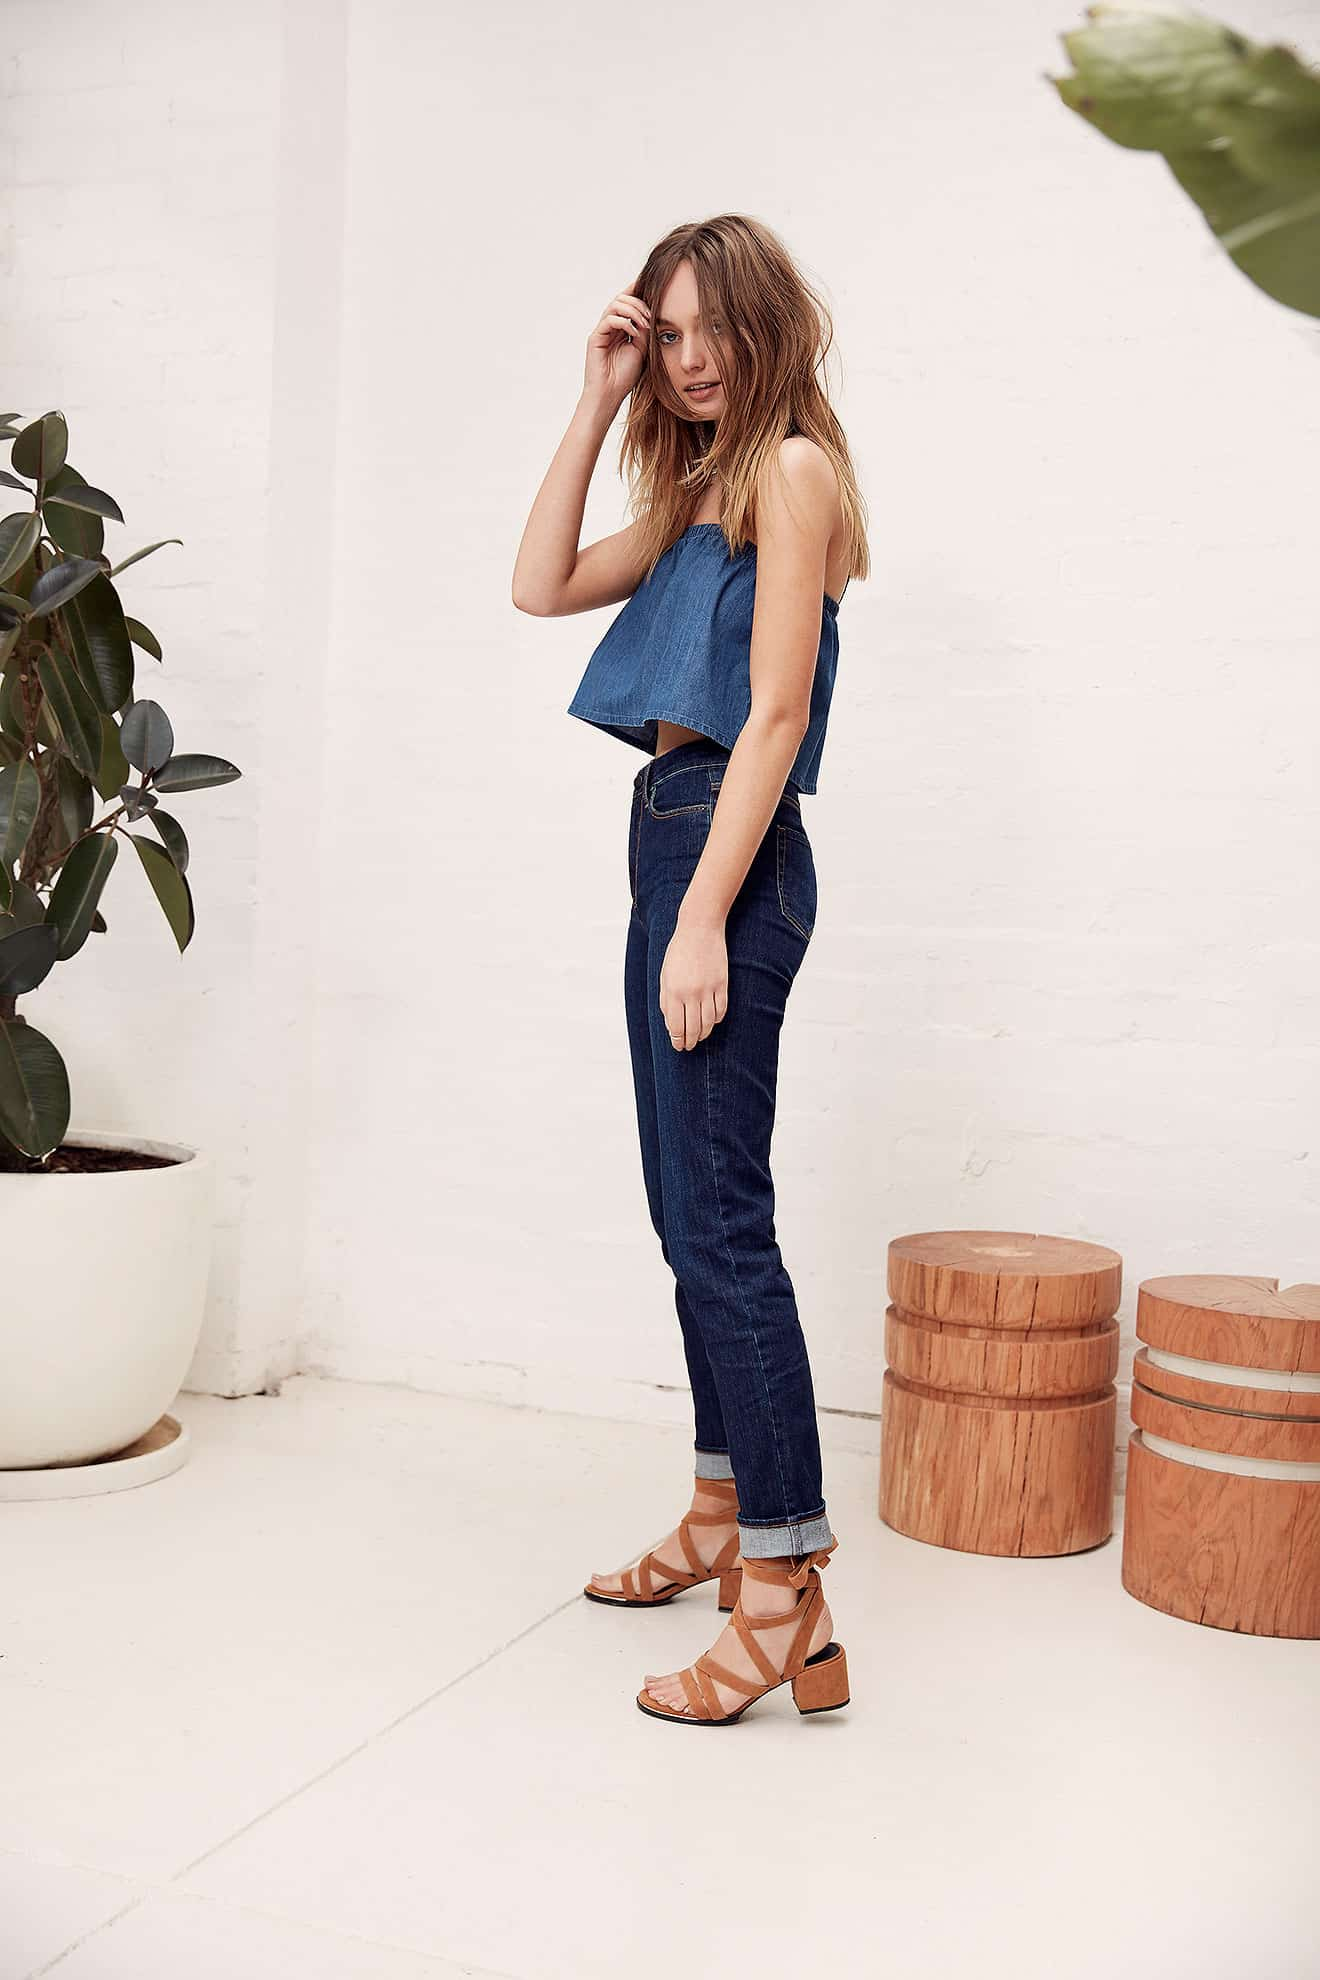 WOMEN: The Tyler Crop Top (WTP24004.R.6) and Ryder Jean Mid Indigo (DSWJ8002.S.9)